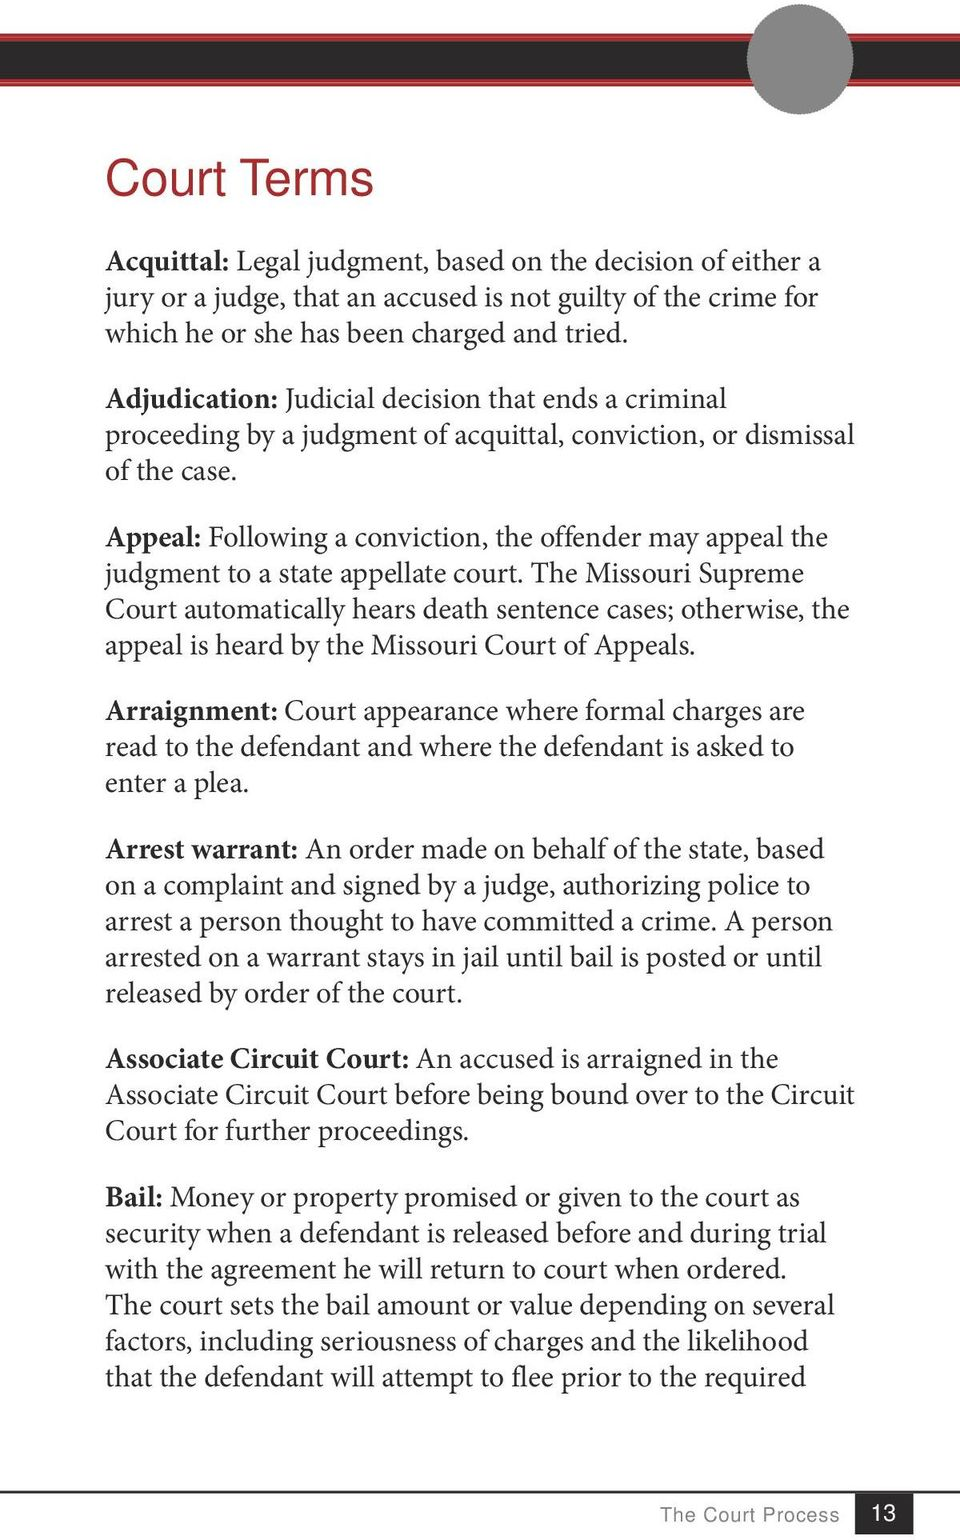 Appeal: Following a conviction, the offender may appeal the judgment to a state appellate court.